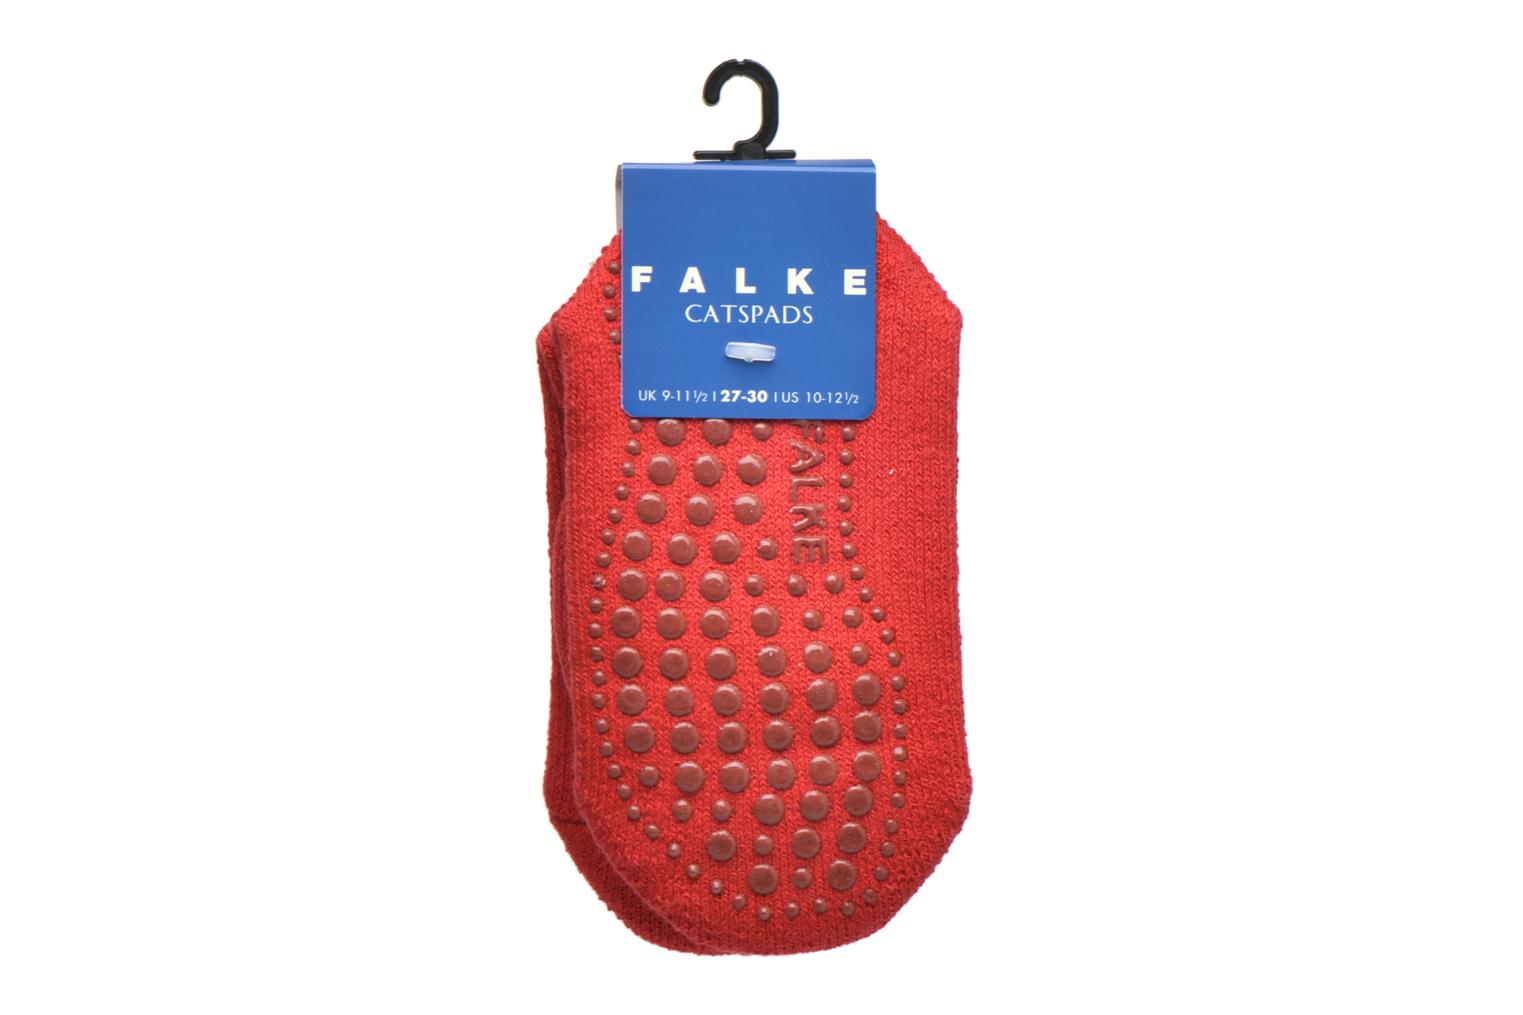 Calze e collant Falke Chaussons-chaussettes Catspads Rosso immagine posteriore